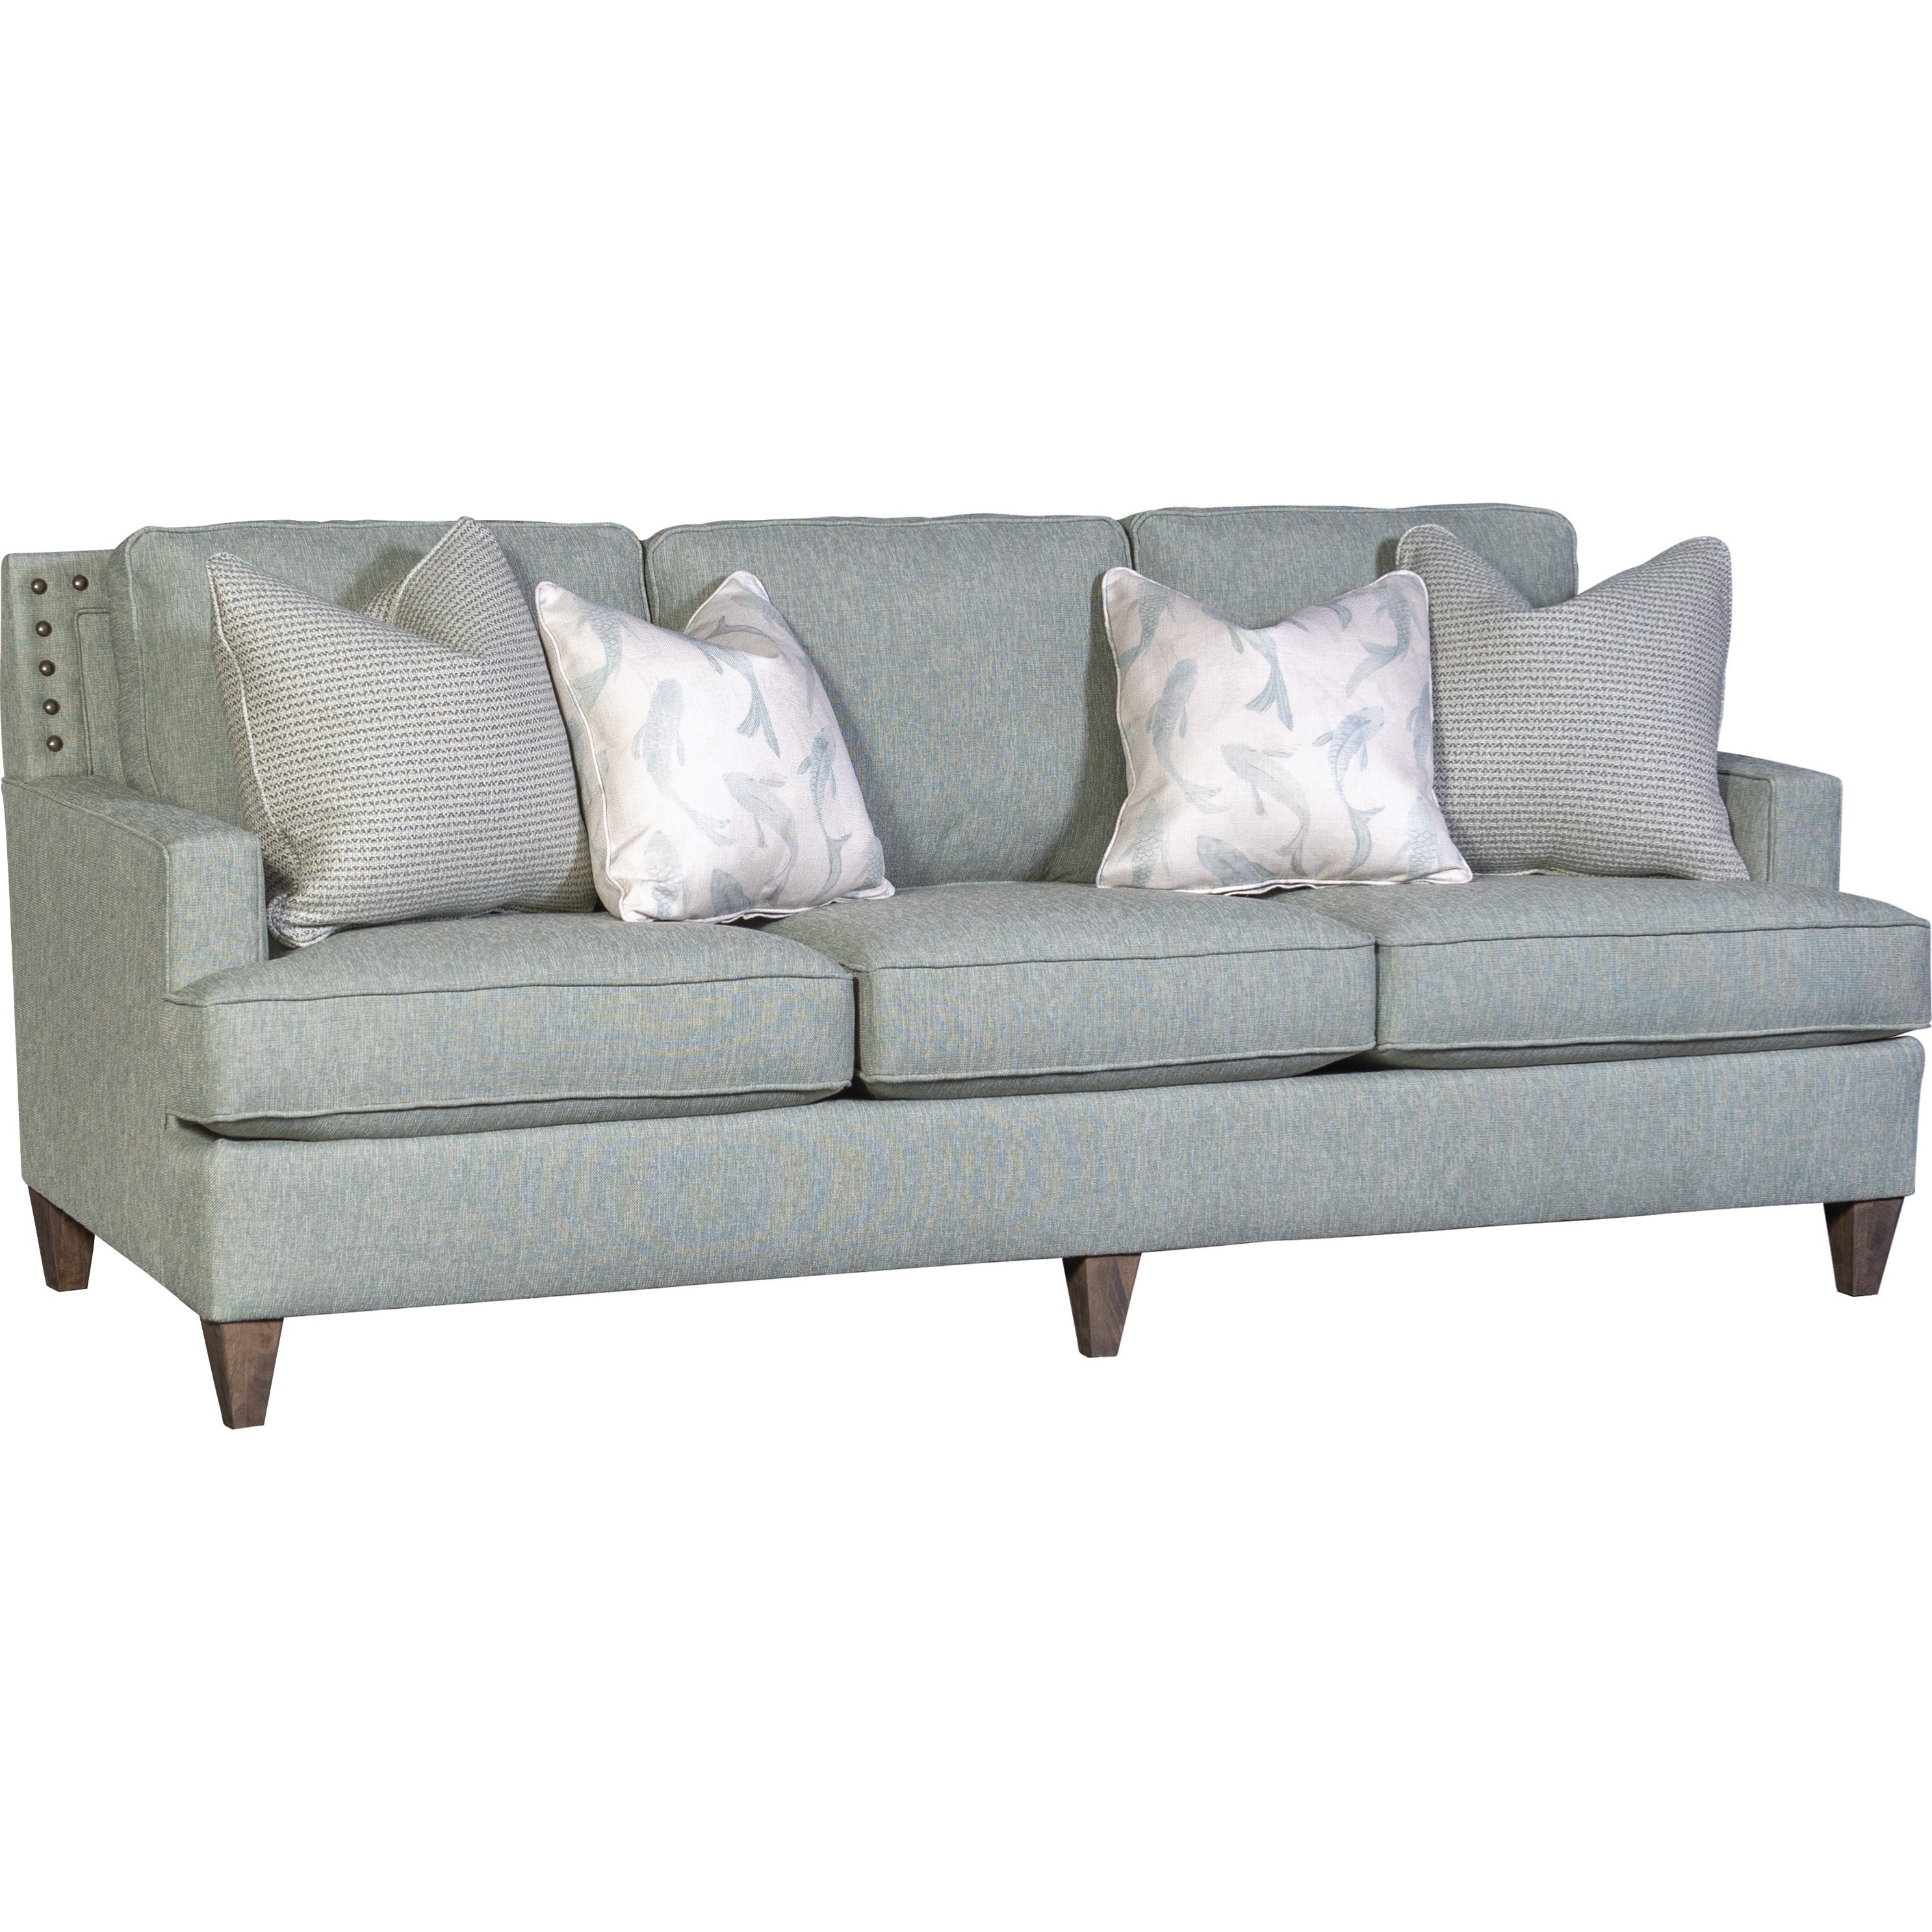 3030 Sofa by Mayo at Wilcox Furniture